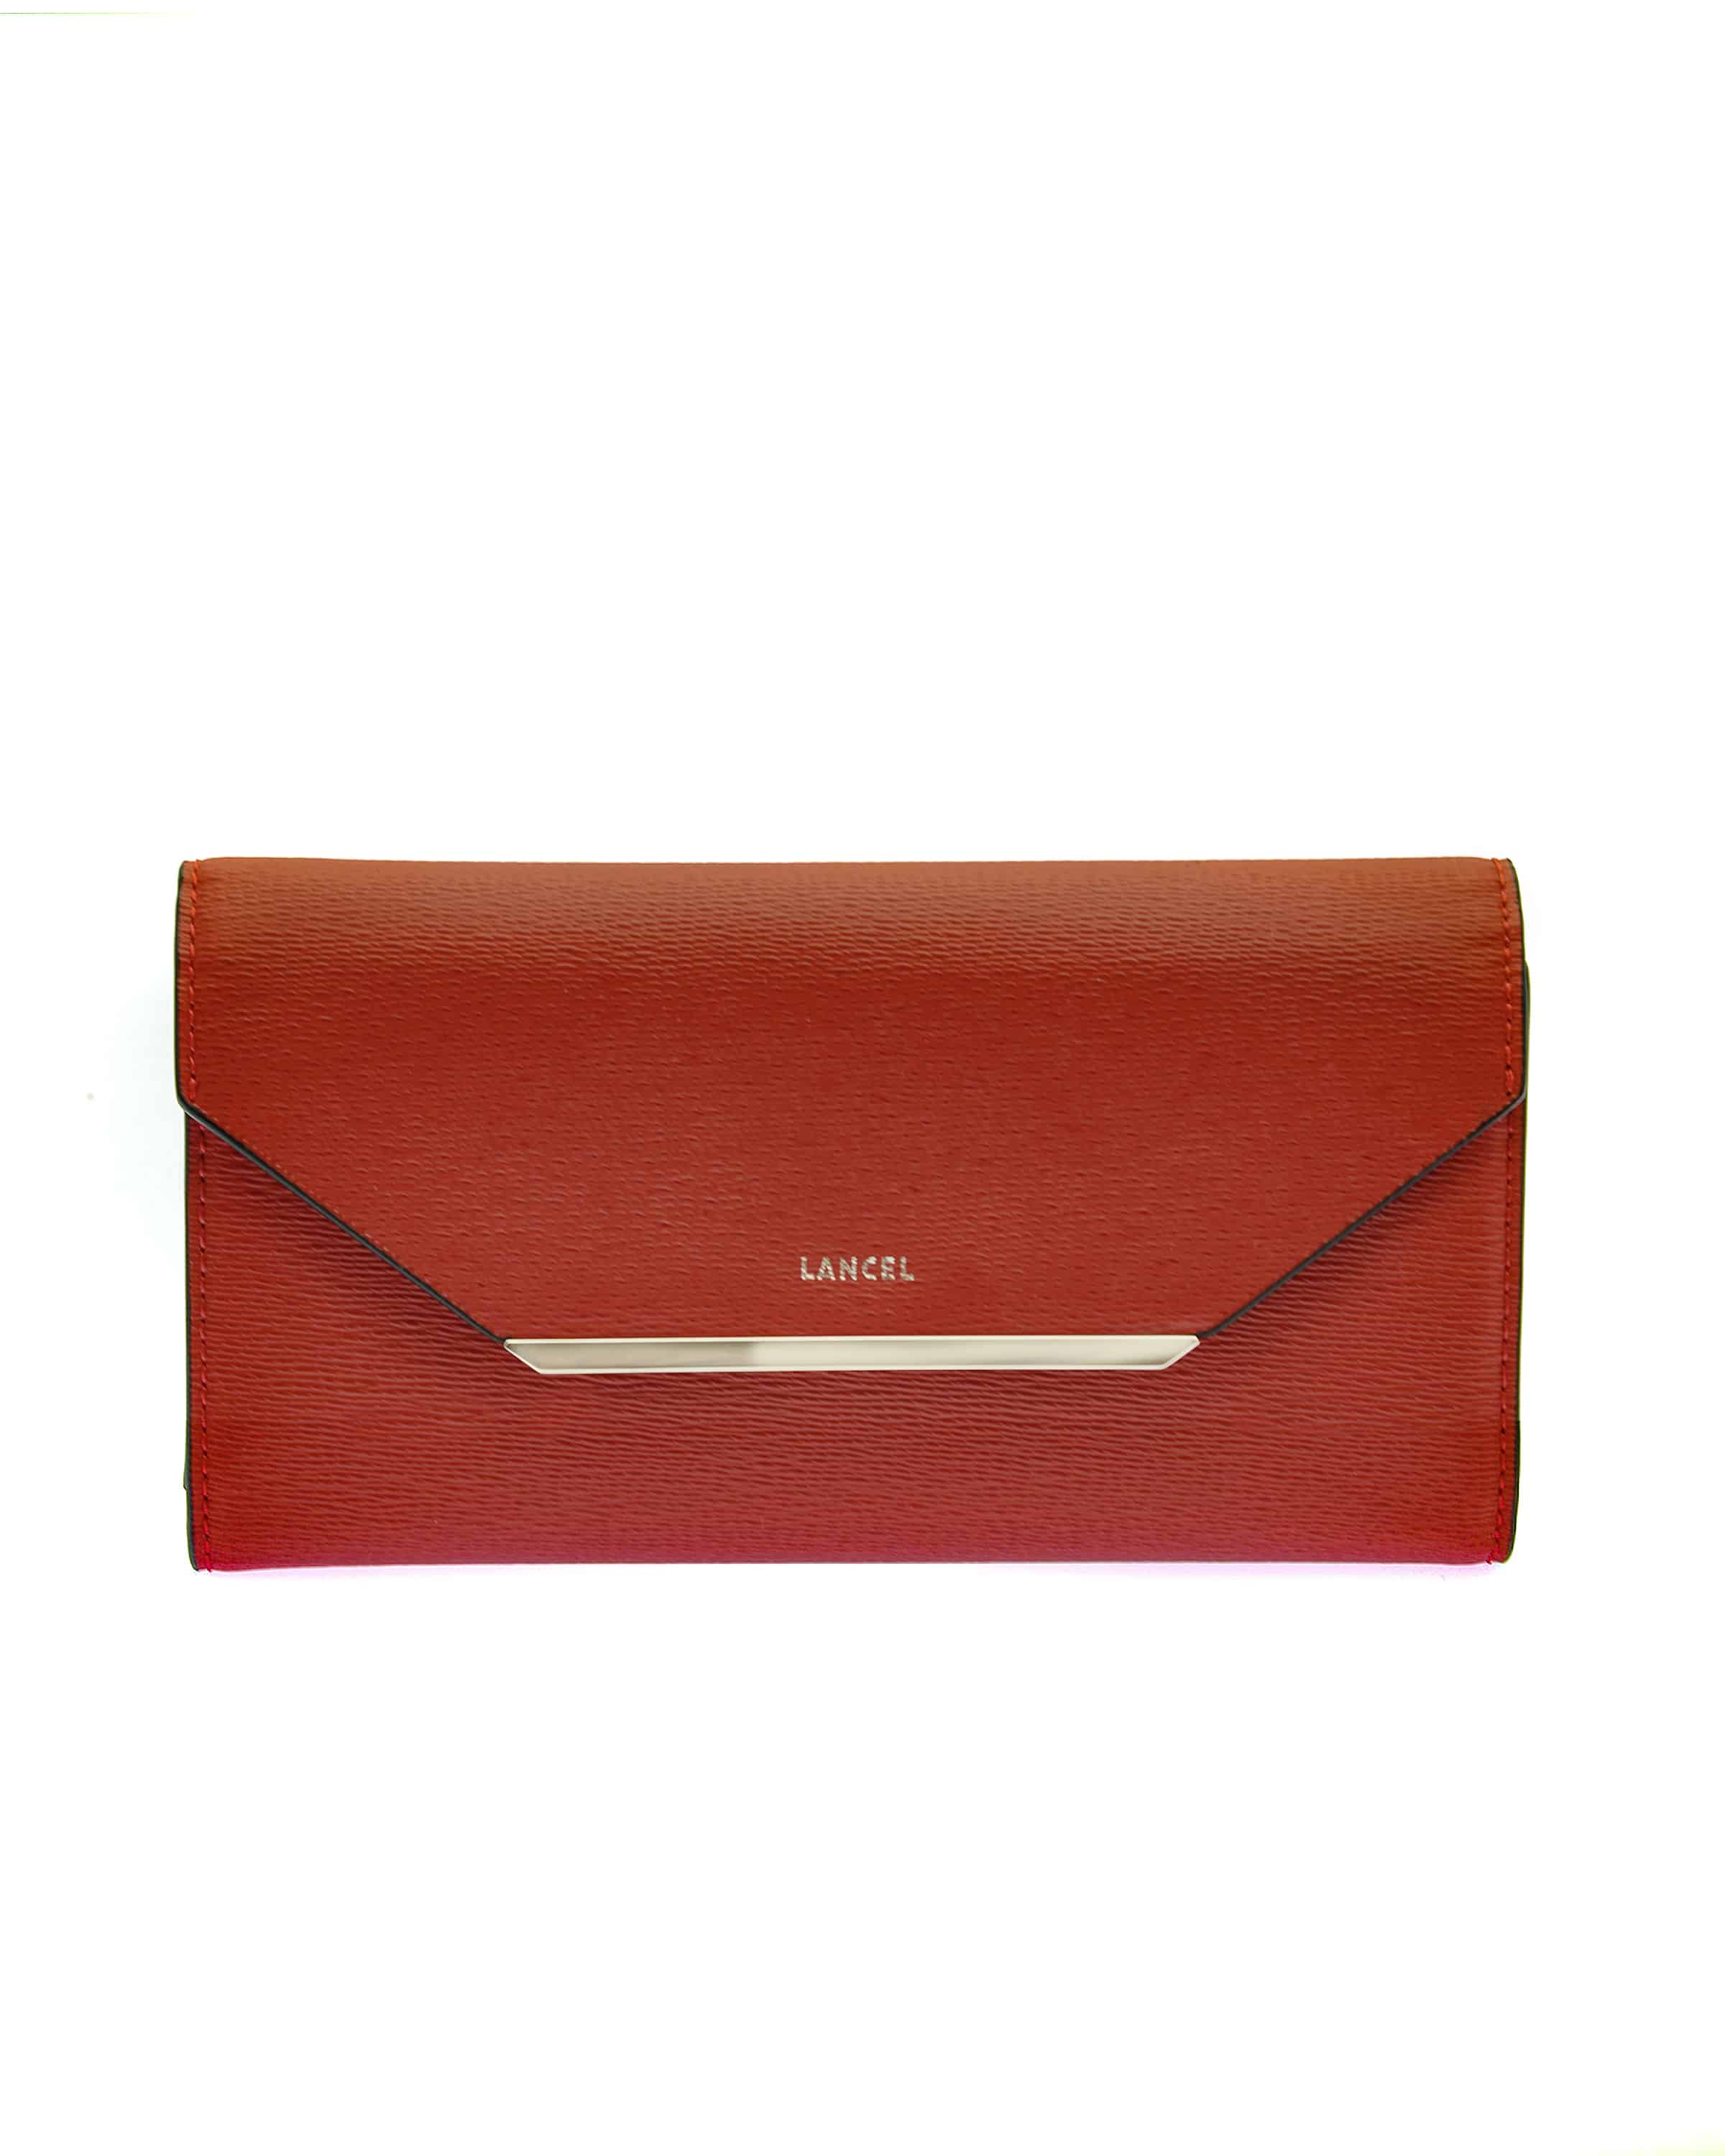 Enveloppe De Lancel Continental Wallet Grained Leather Red A07676IRTU